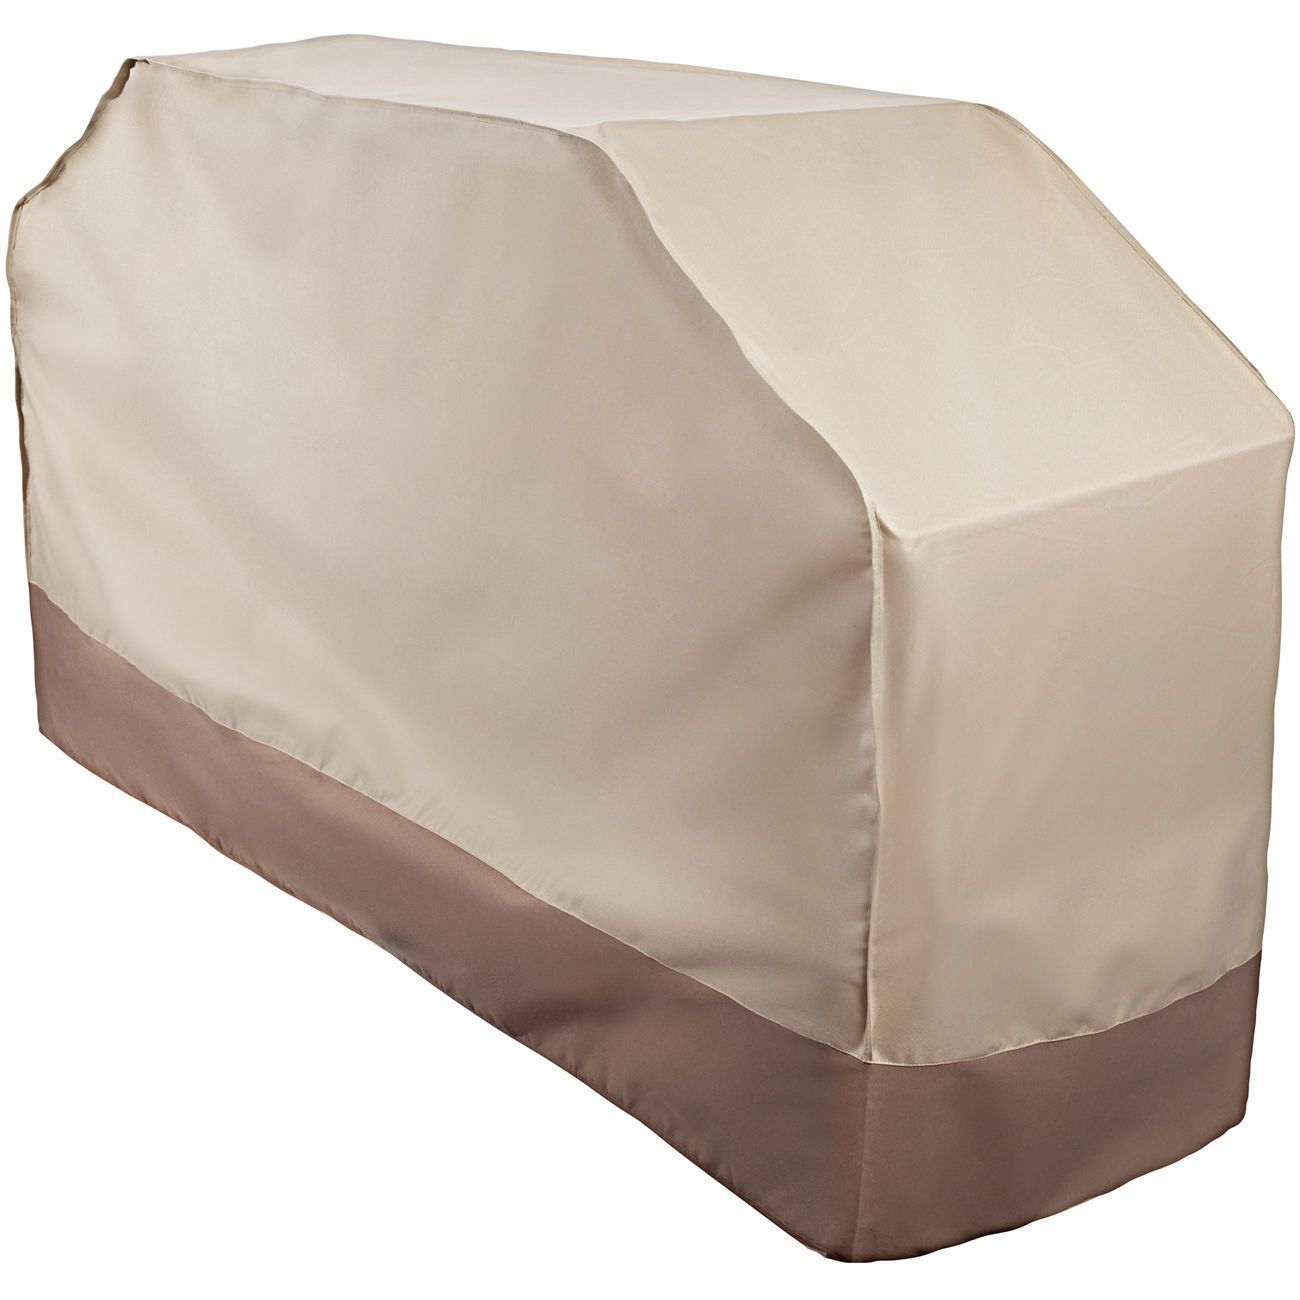 bbq grill cover gas heavy duty for home patio garden storage, Garten und erstellen